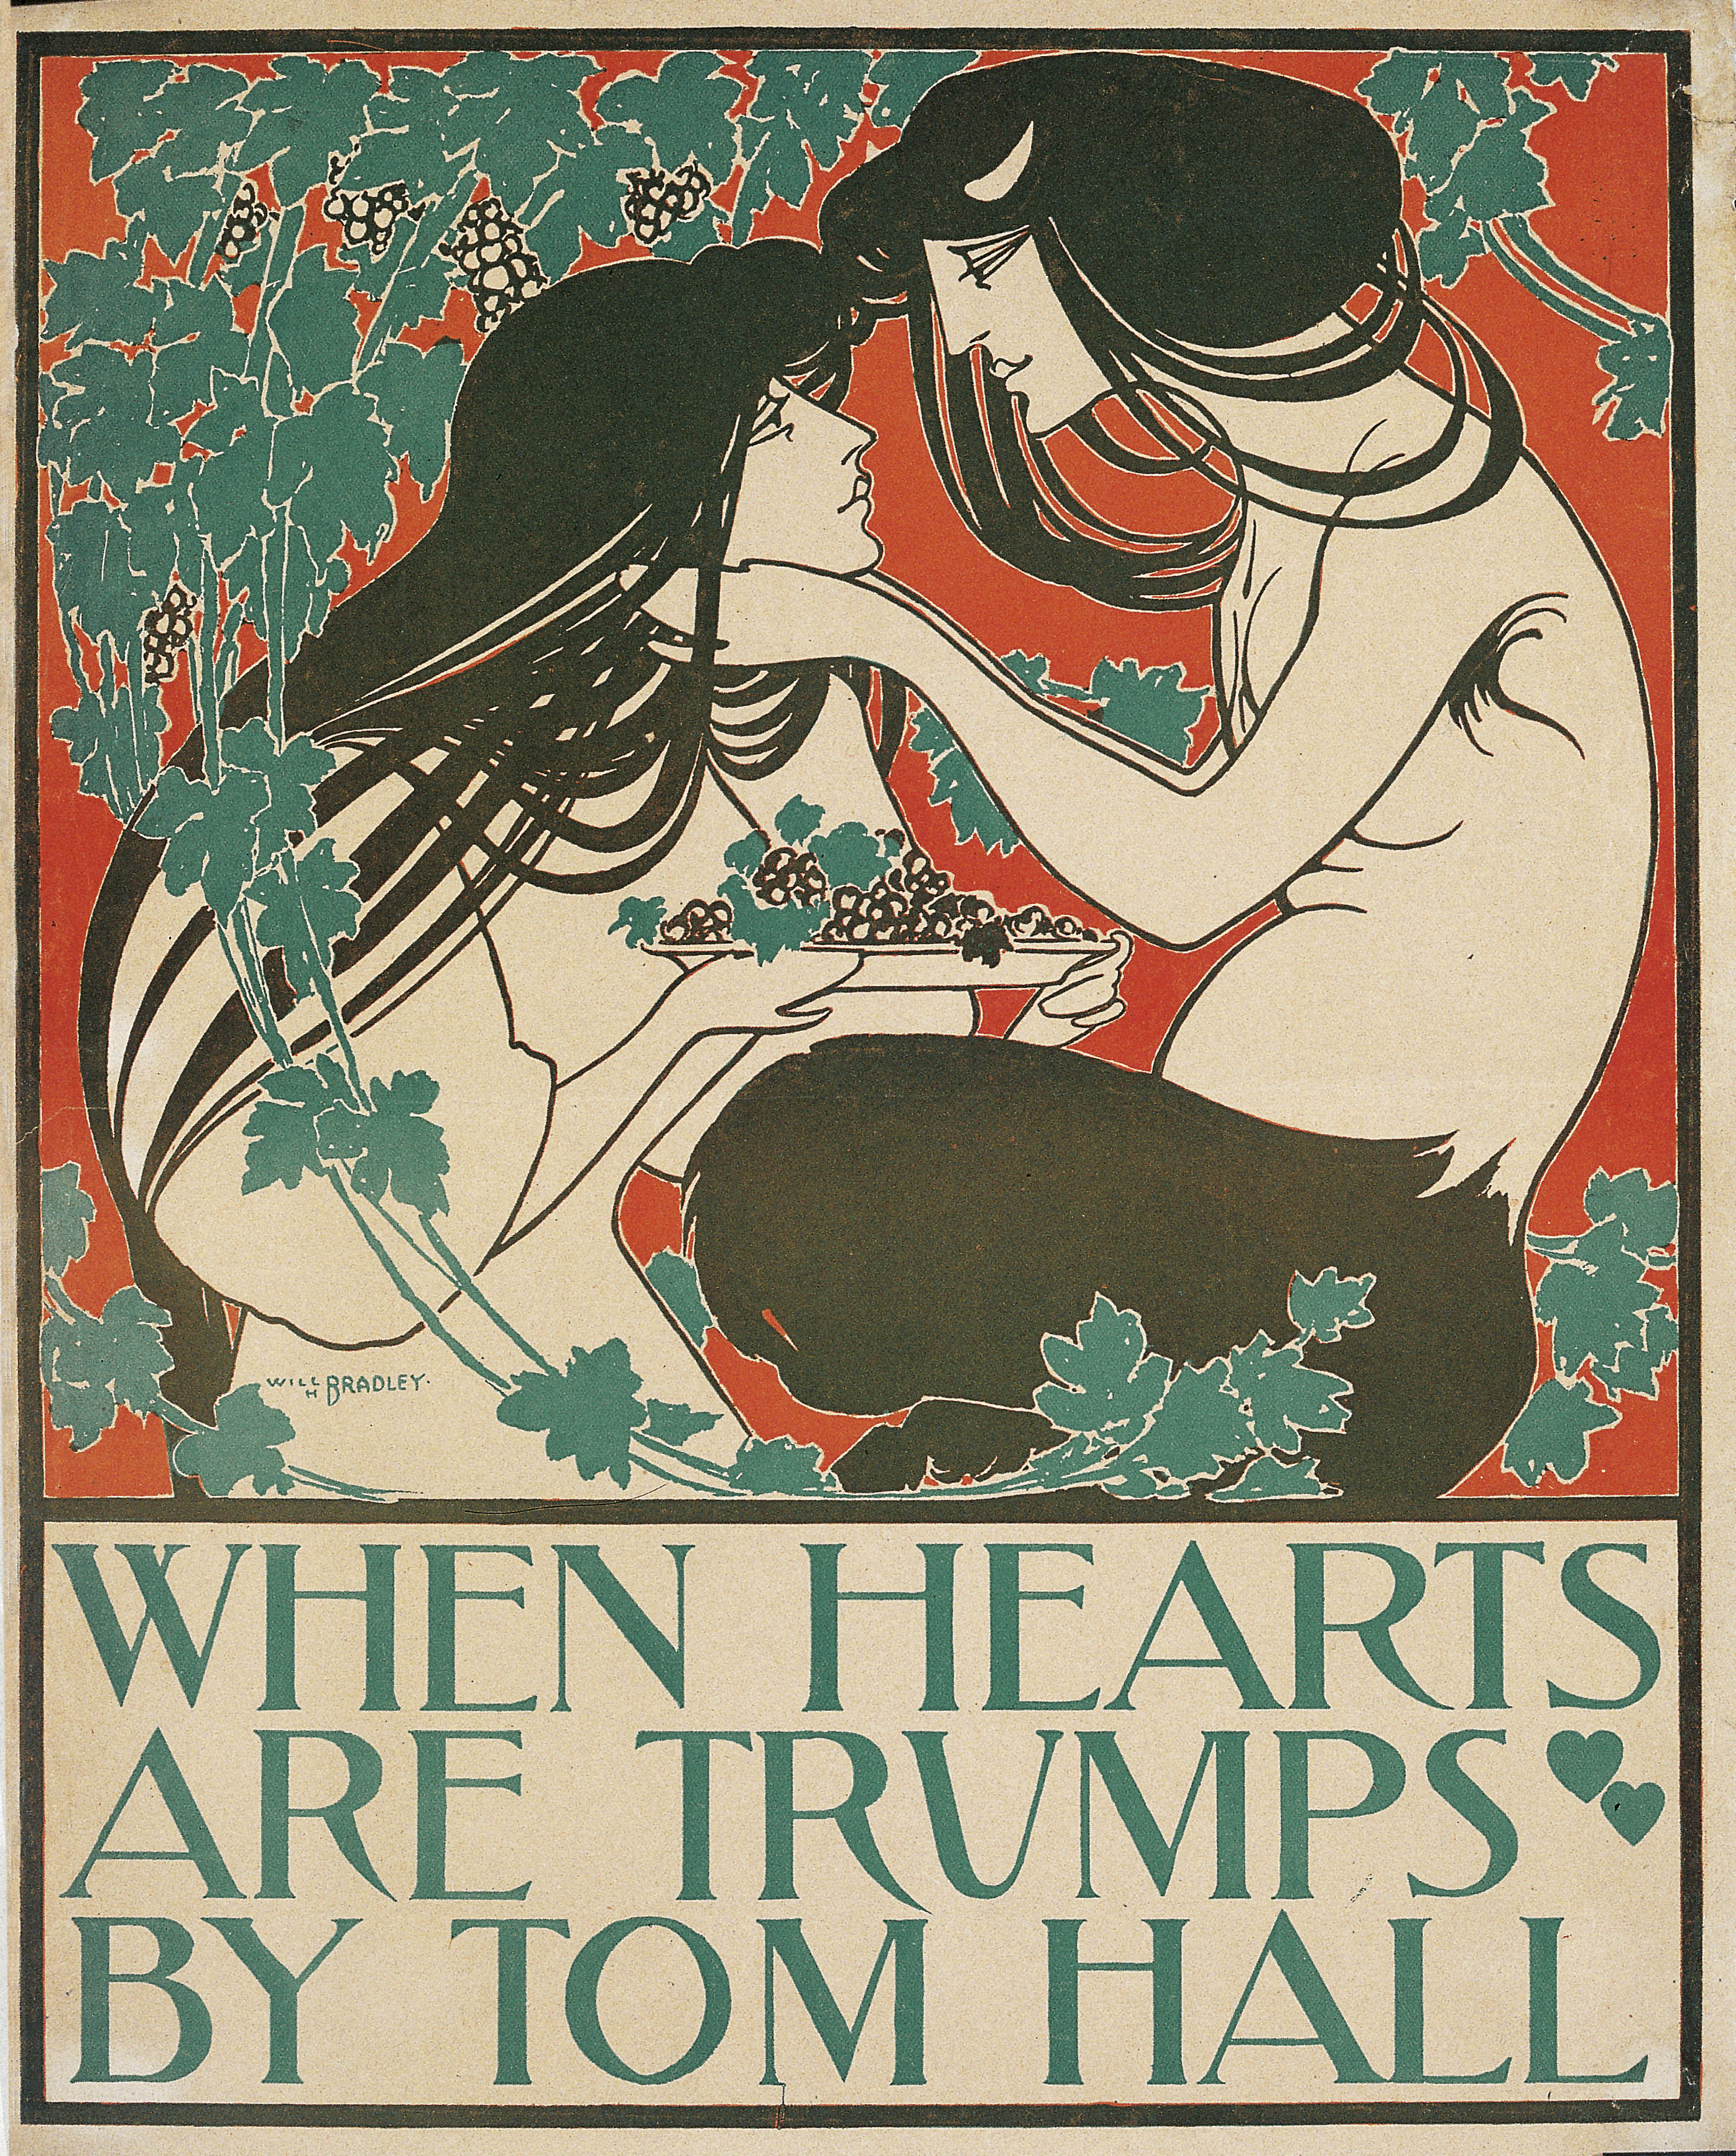 William Henry Bradley - When Hearts Are Trumps by Tom Hall - 1894